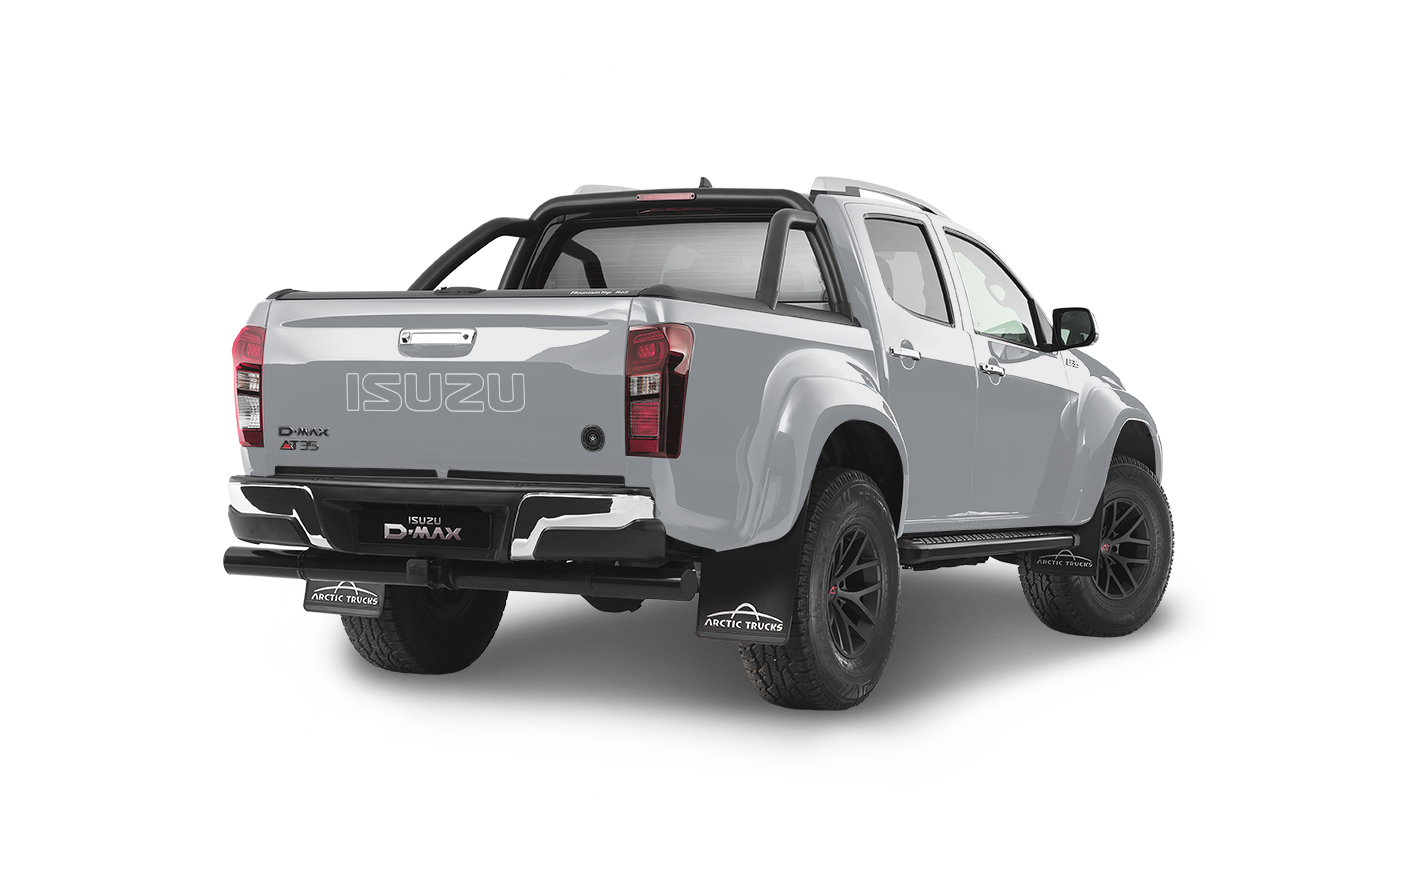 Rear view of the Isuzu D-Max Arctic AT35 in silver